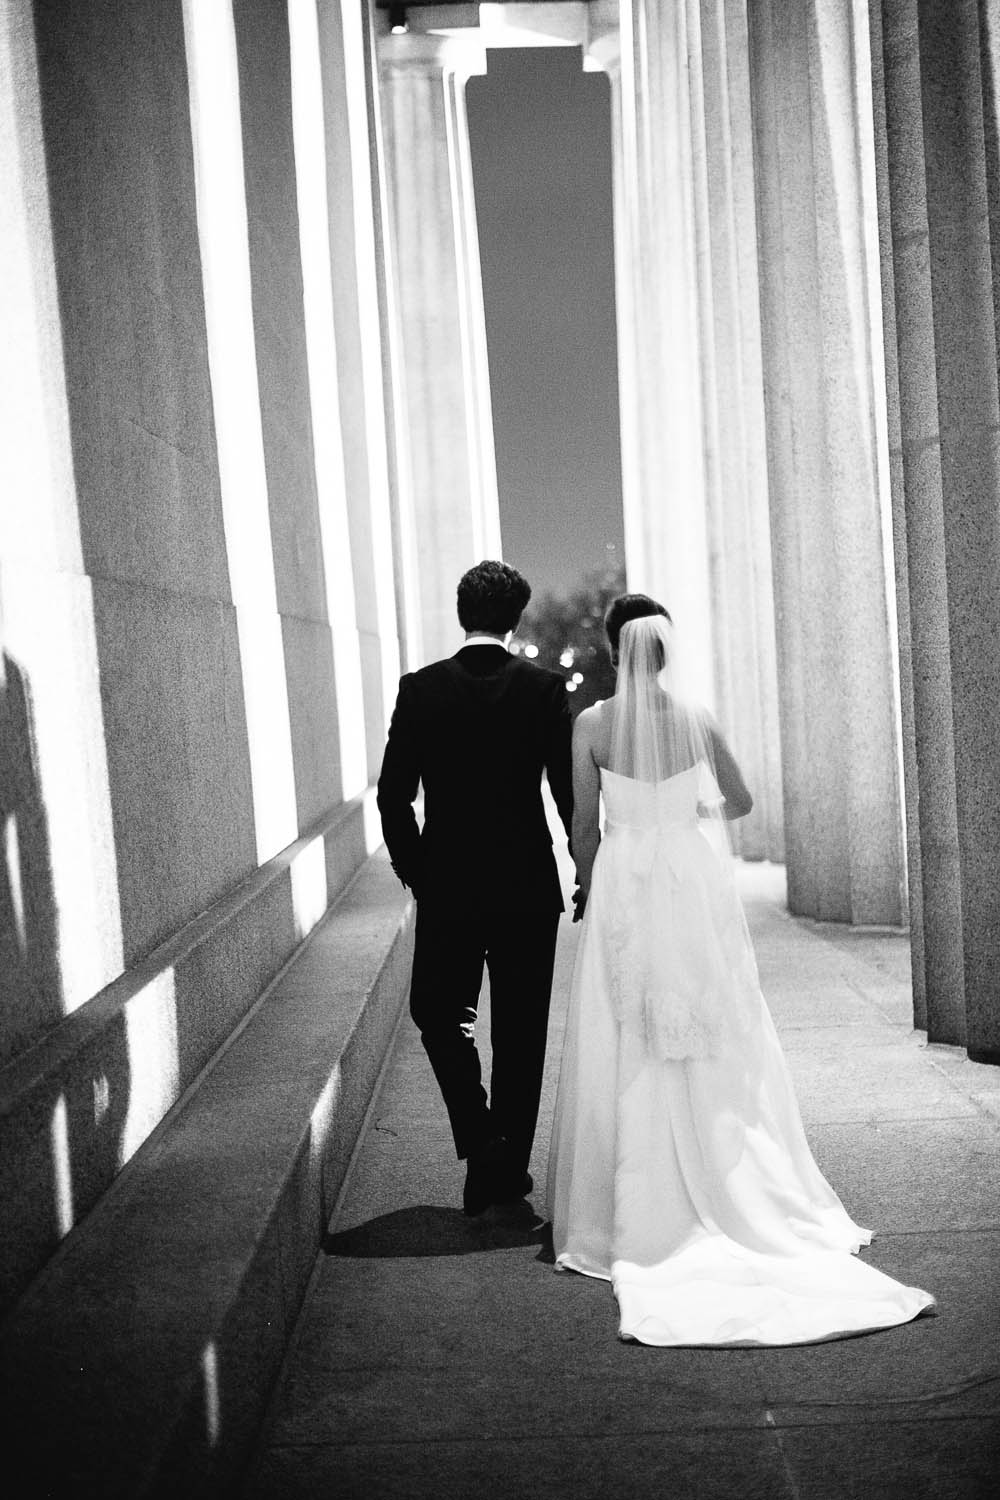 parthenon documentary classic film wedding photographers nashville ©2016abigailbobophotography-43.jpg